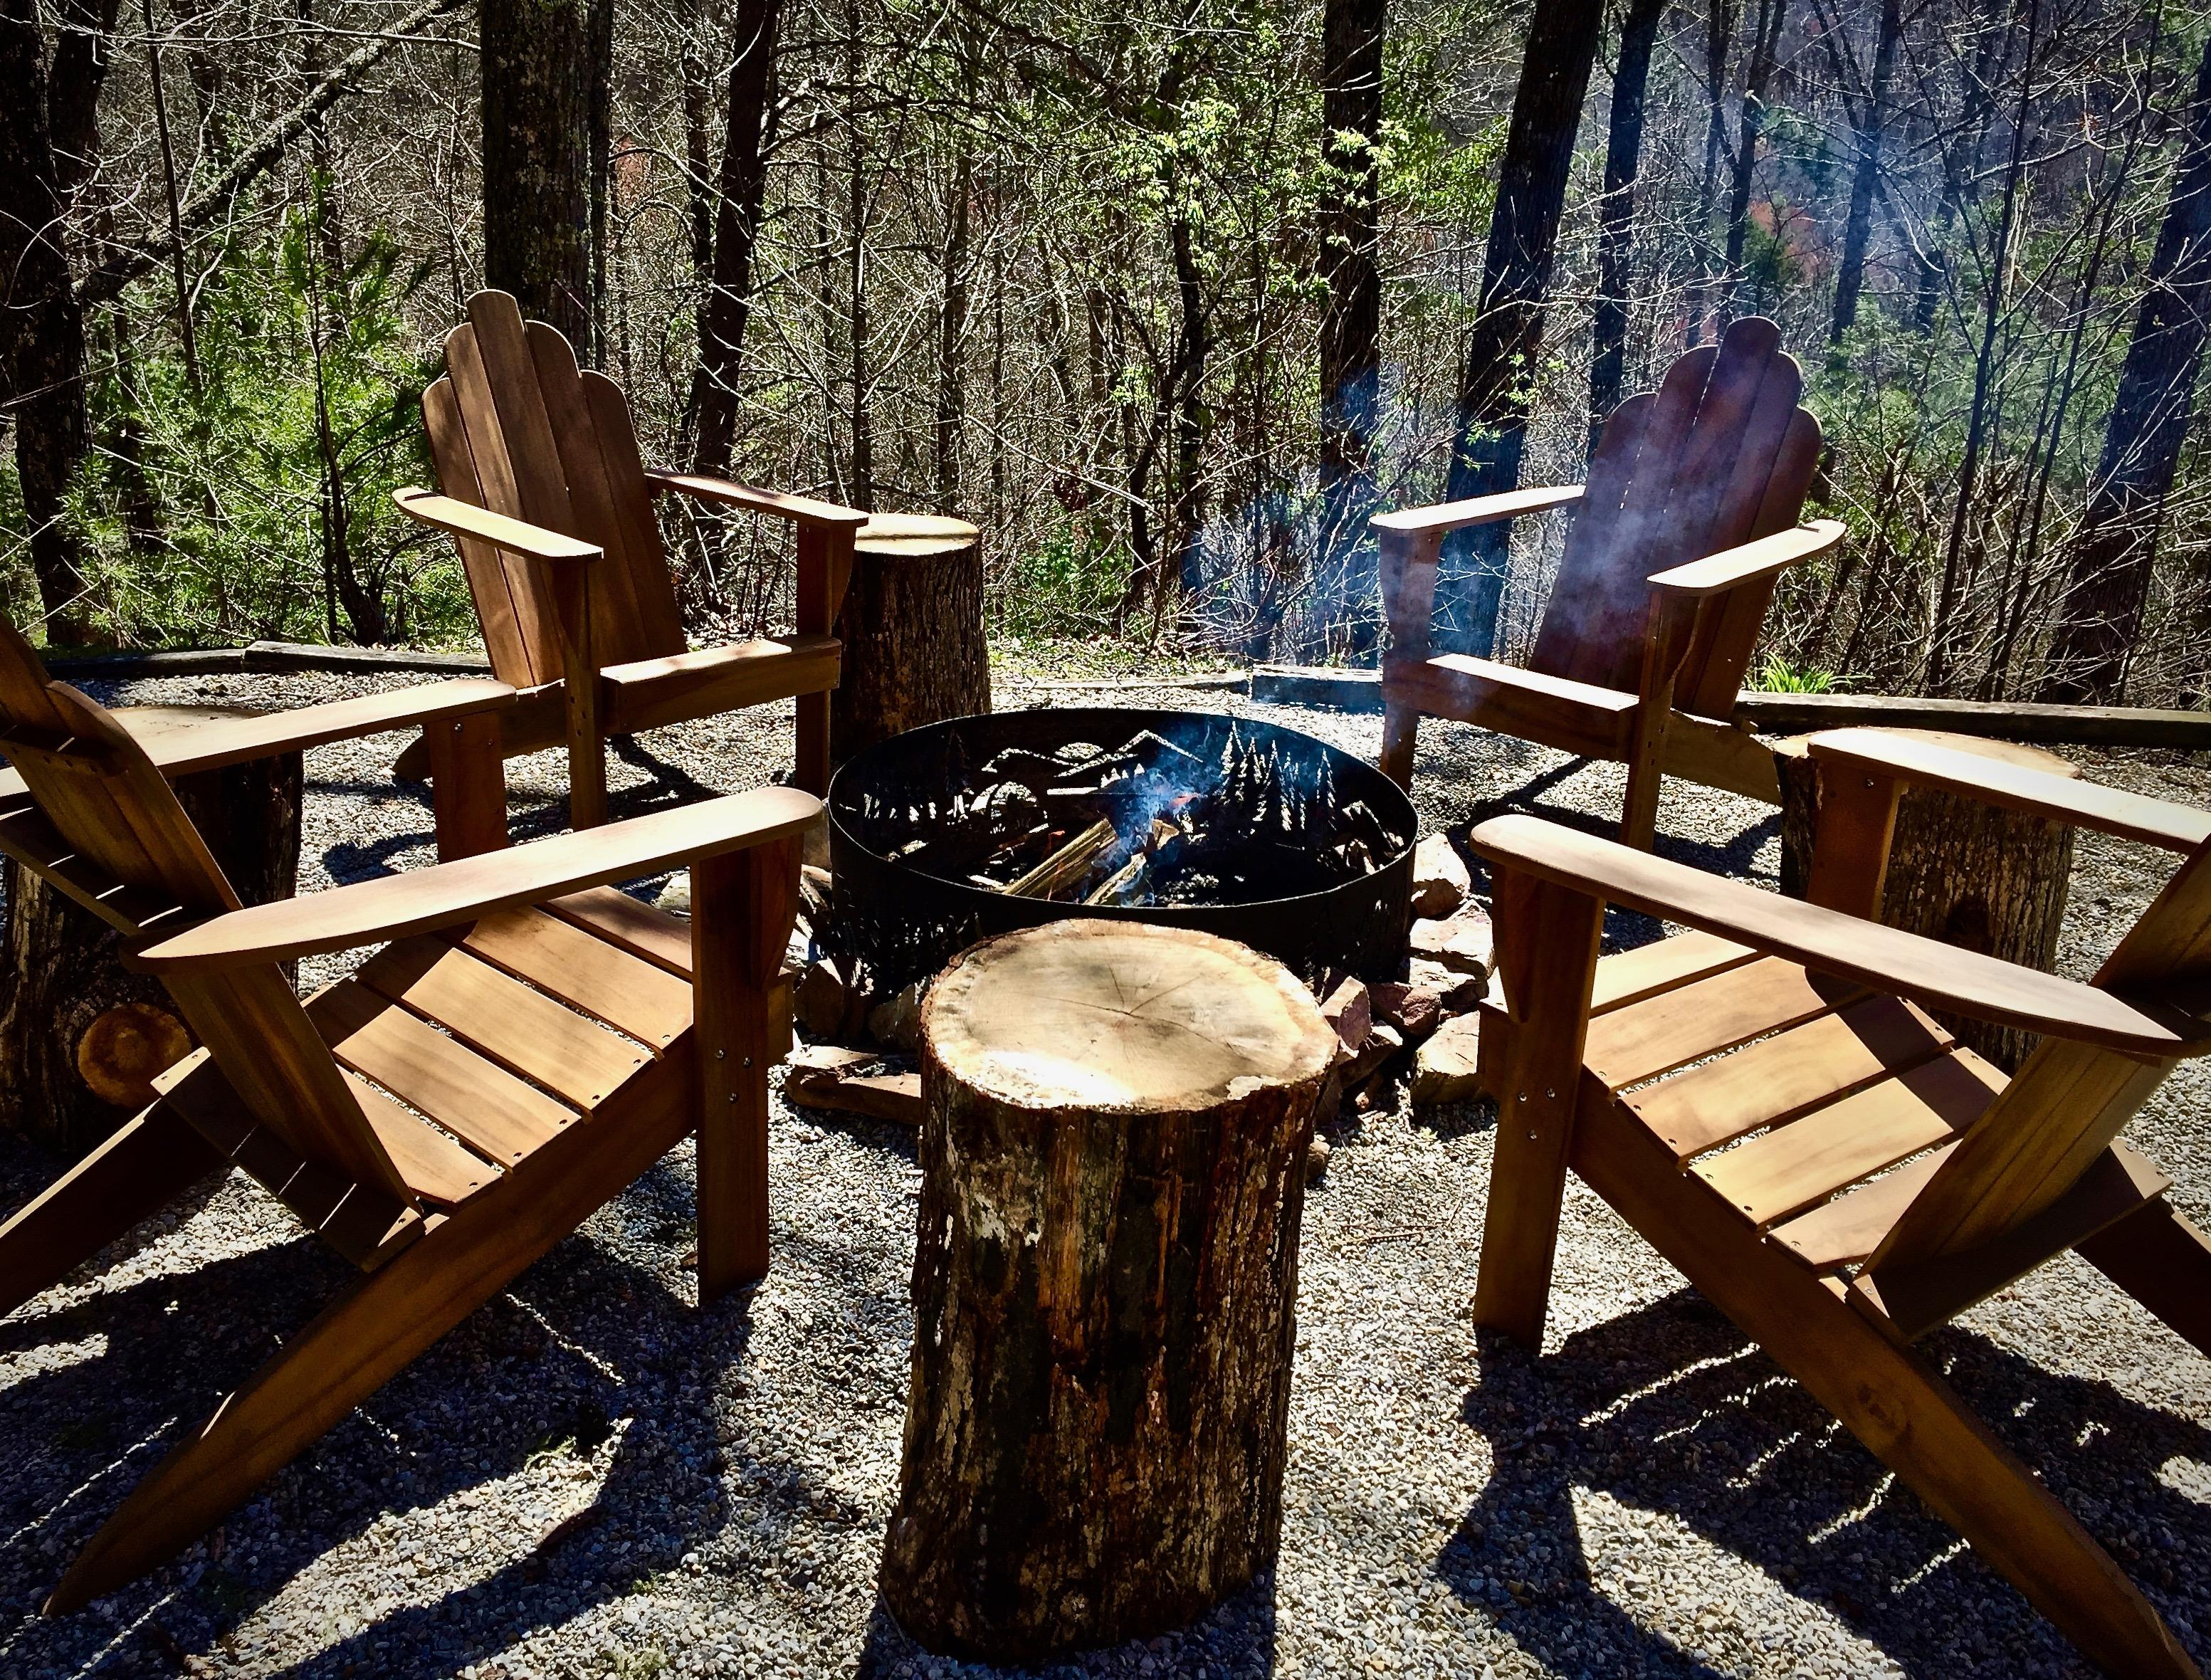 2019 Season began with 4 New Teak Adirondack Chairs to Relax around the Fire Pit